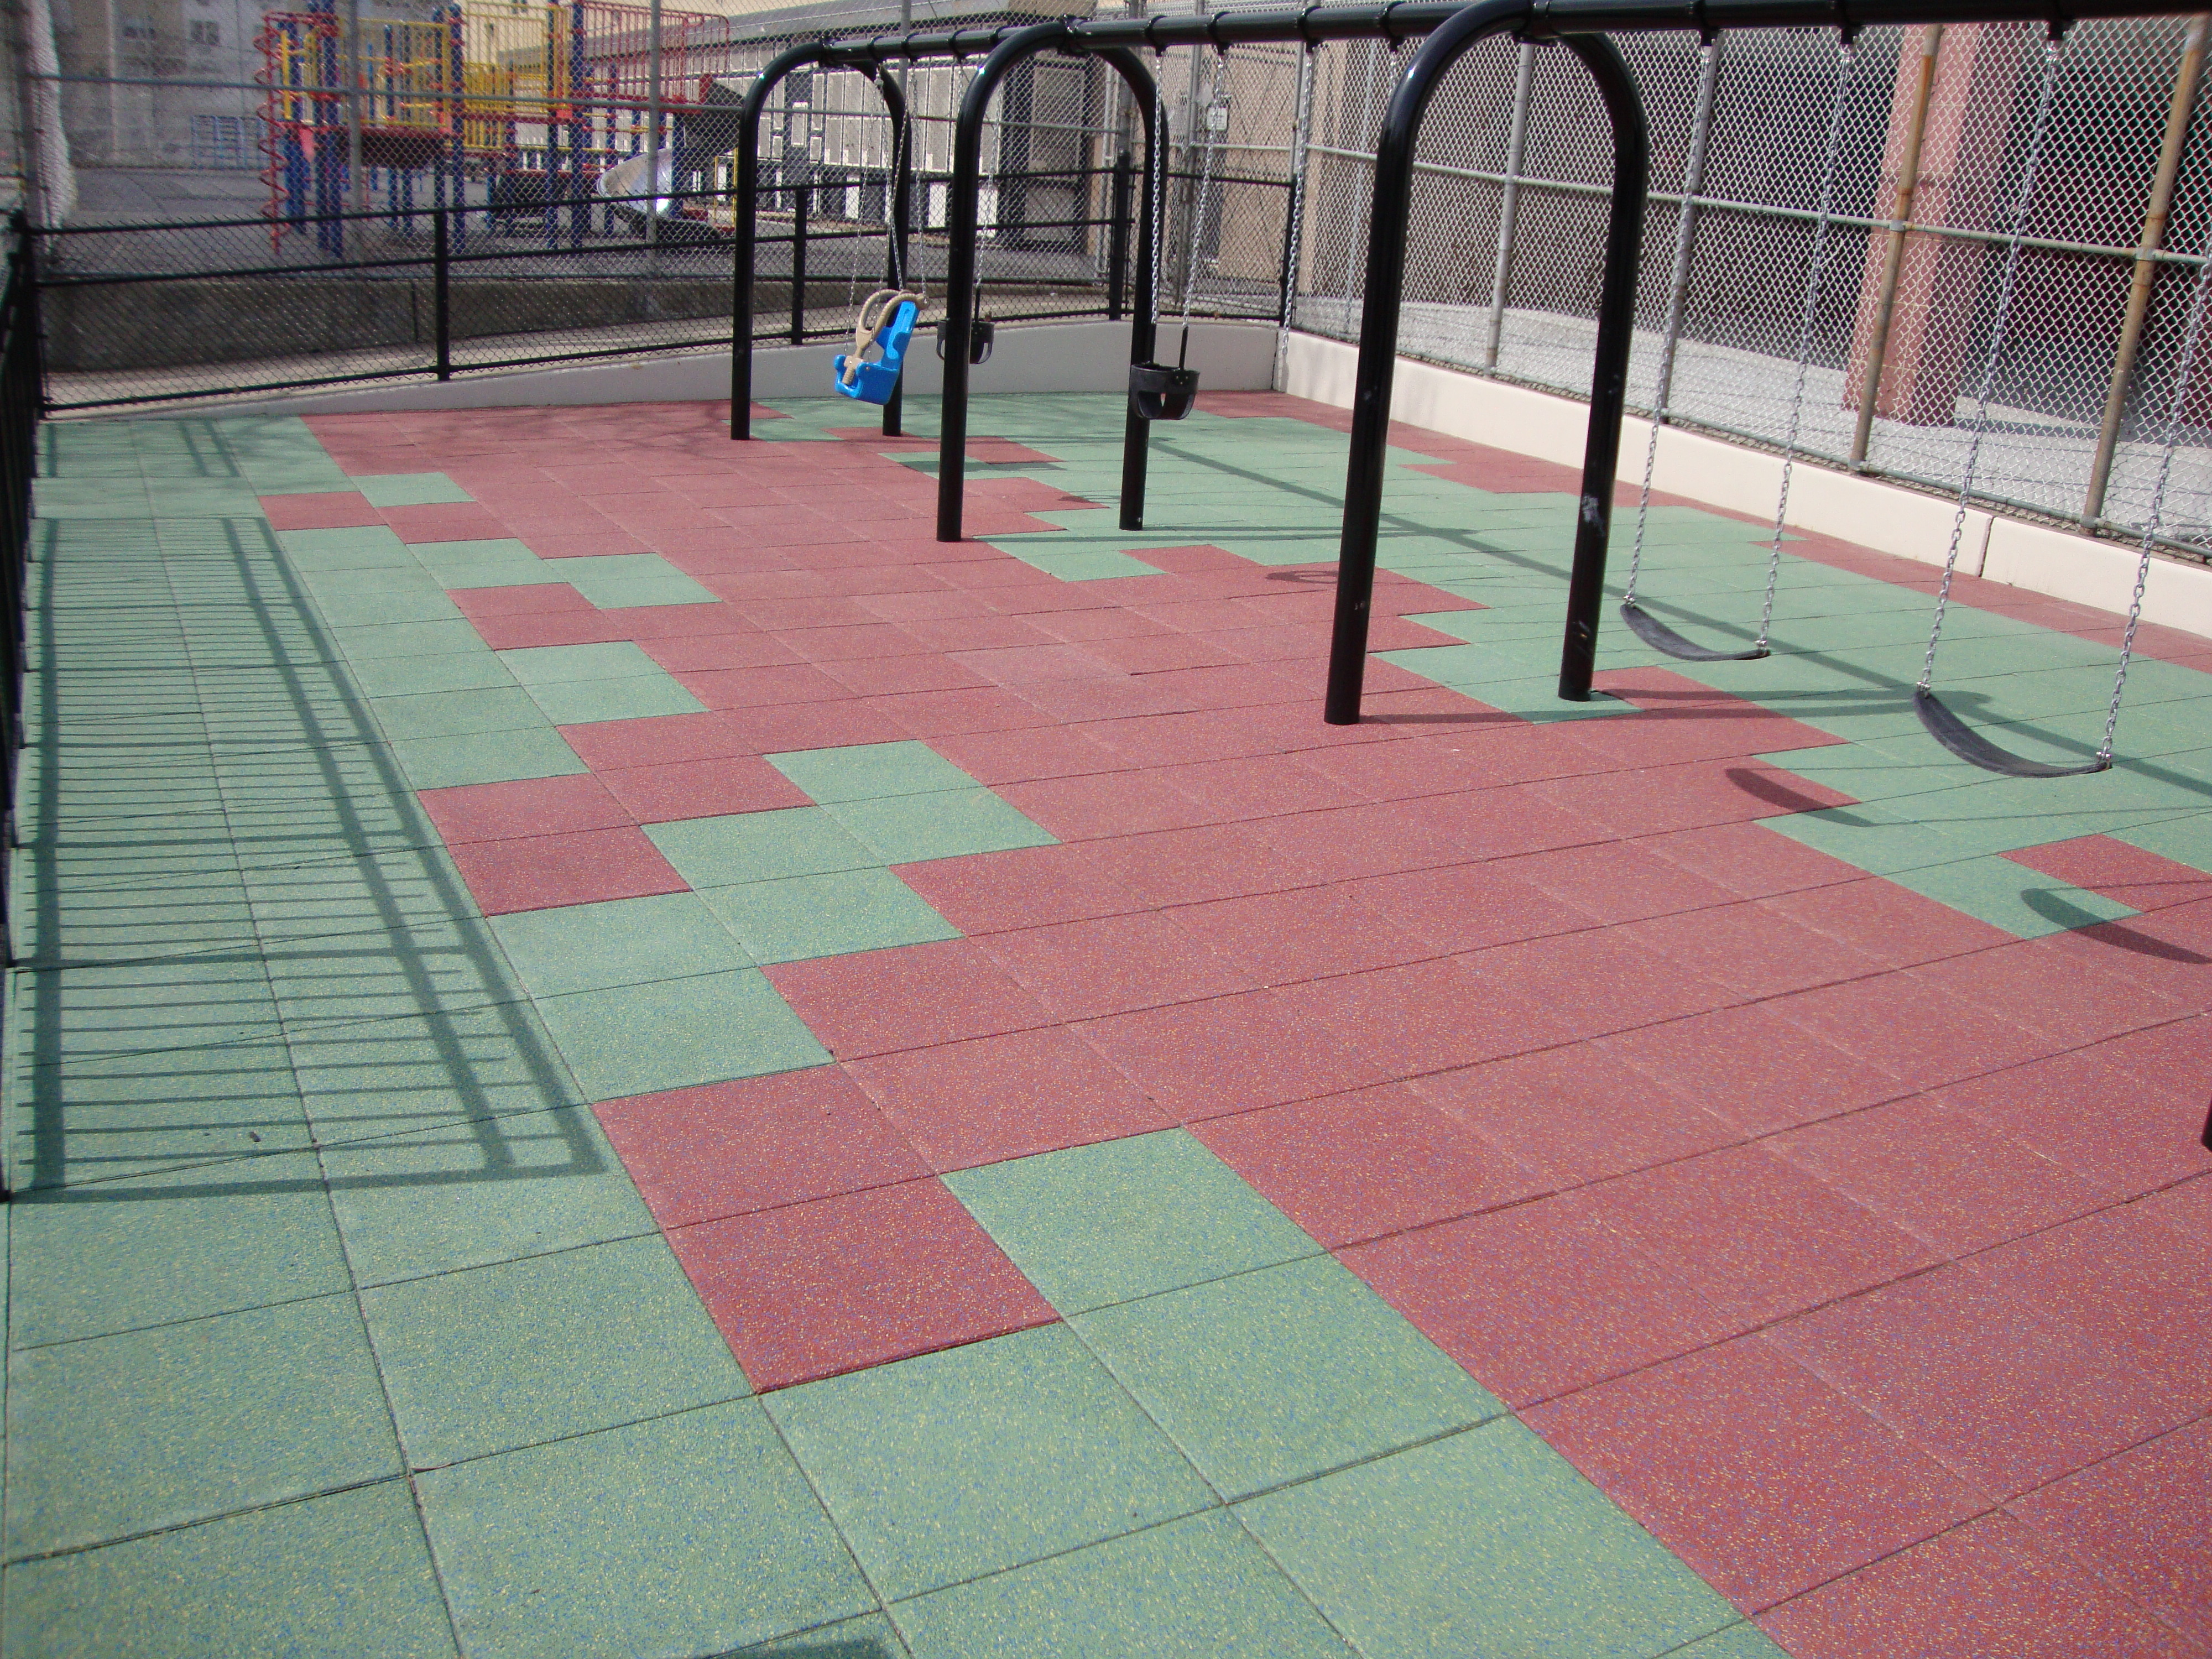 Unity playgrounds rubber mats safety surfacing playground check out our video page of our website to see who what when where how and why this product was mentioned dailygadgetfo Images